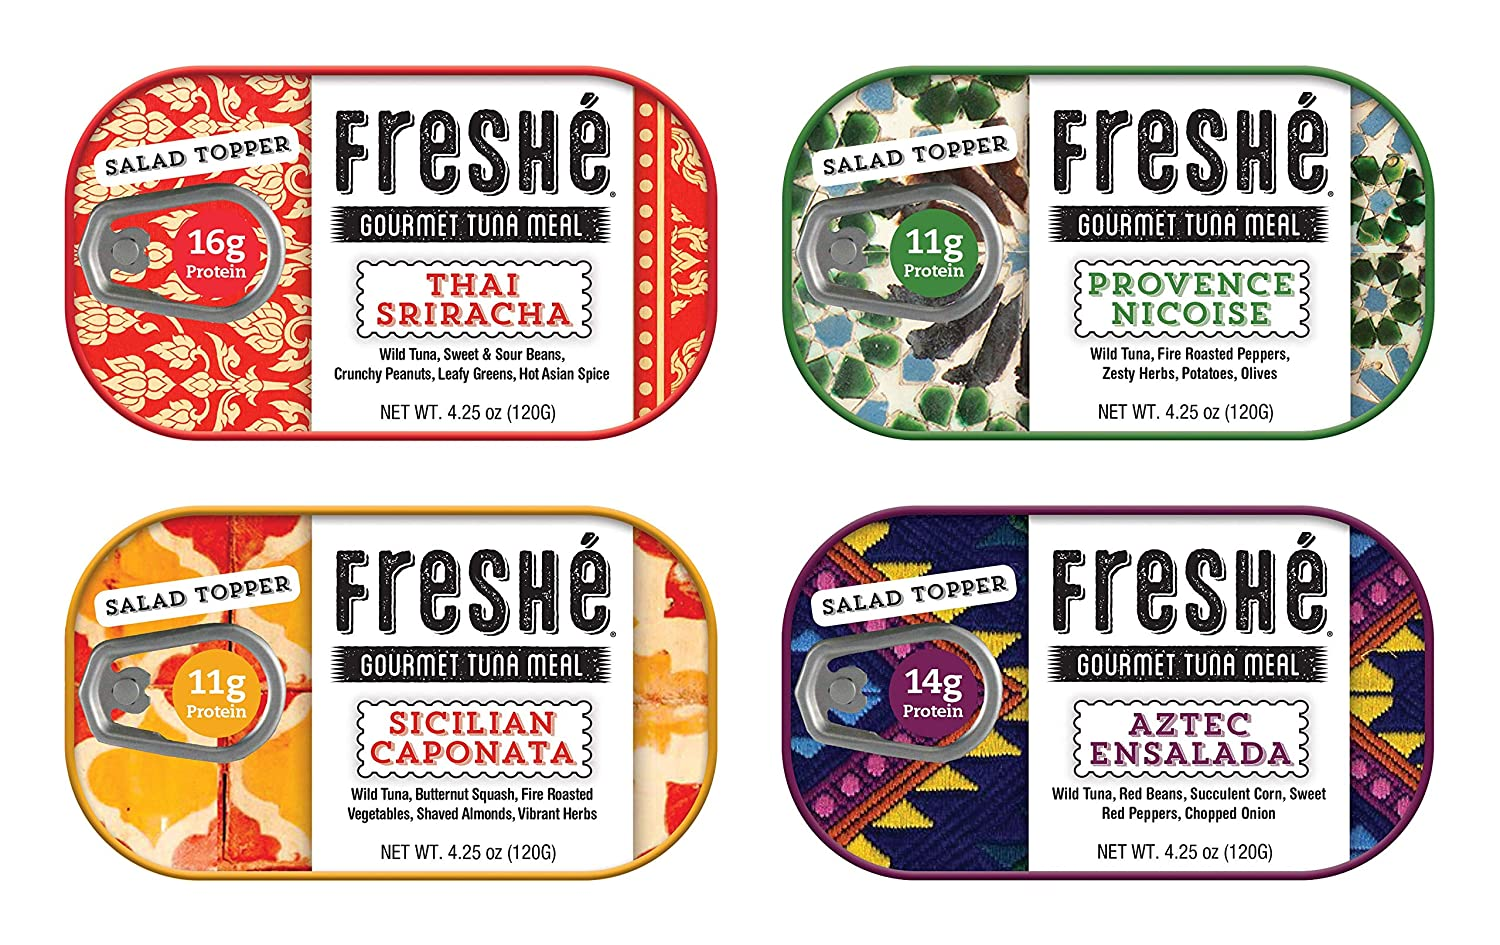 Freshé Gourmet Canned Tuna Variety 4 Over item handling Healthy Pack Max 48% OFF High